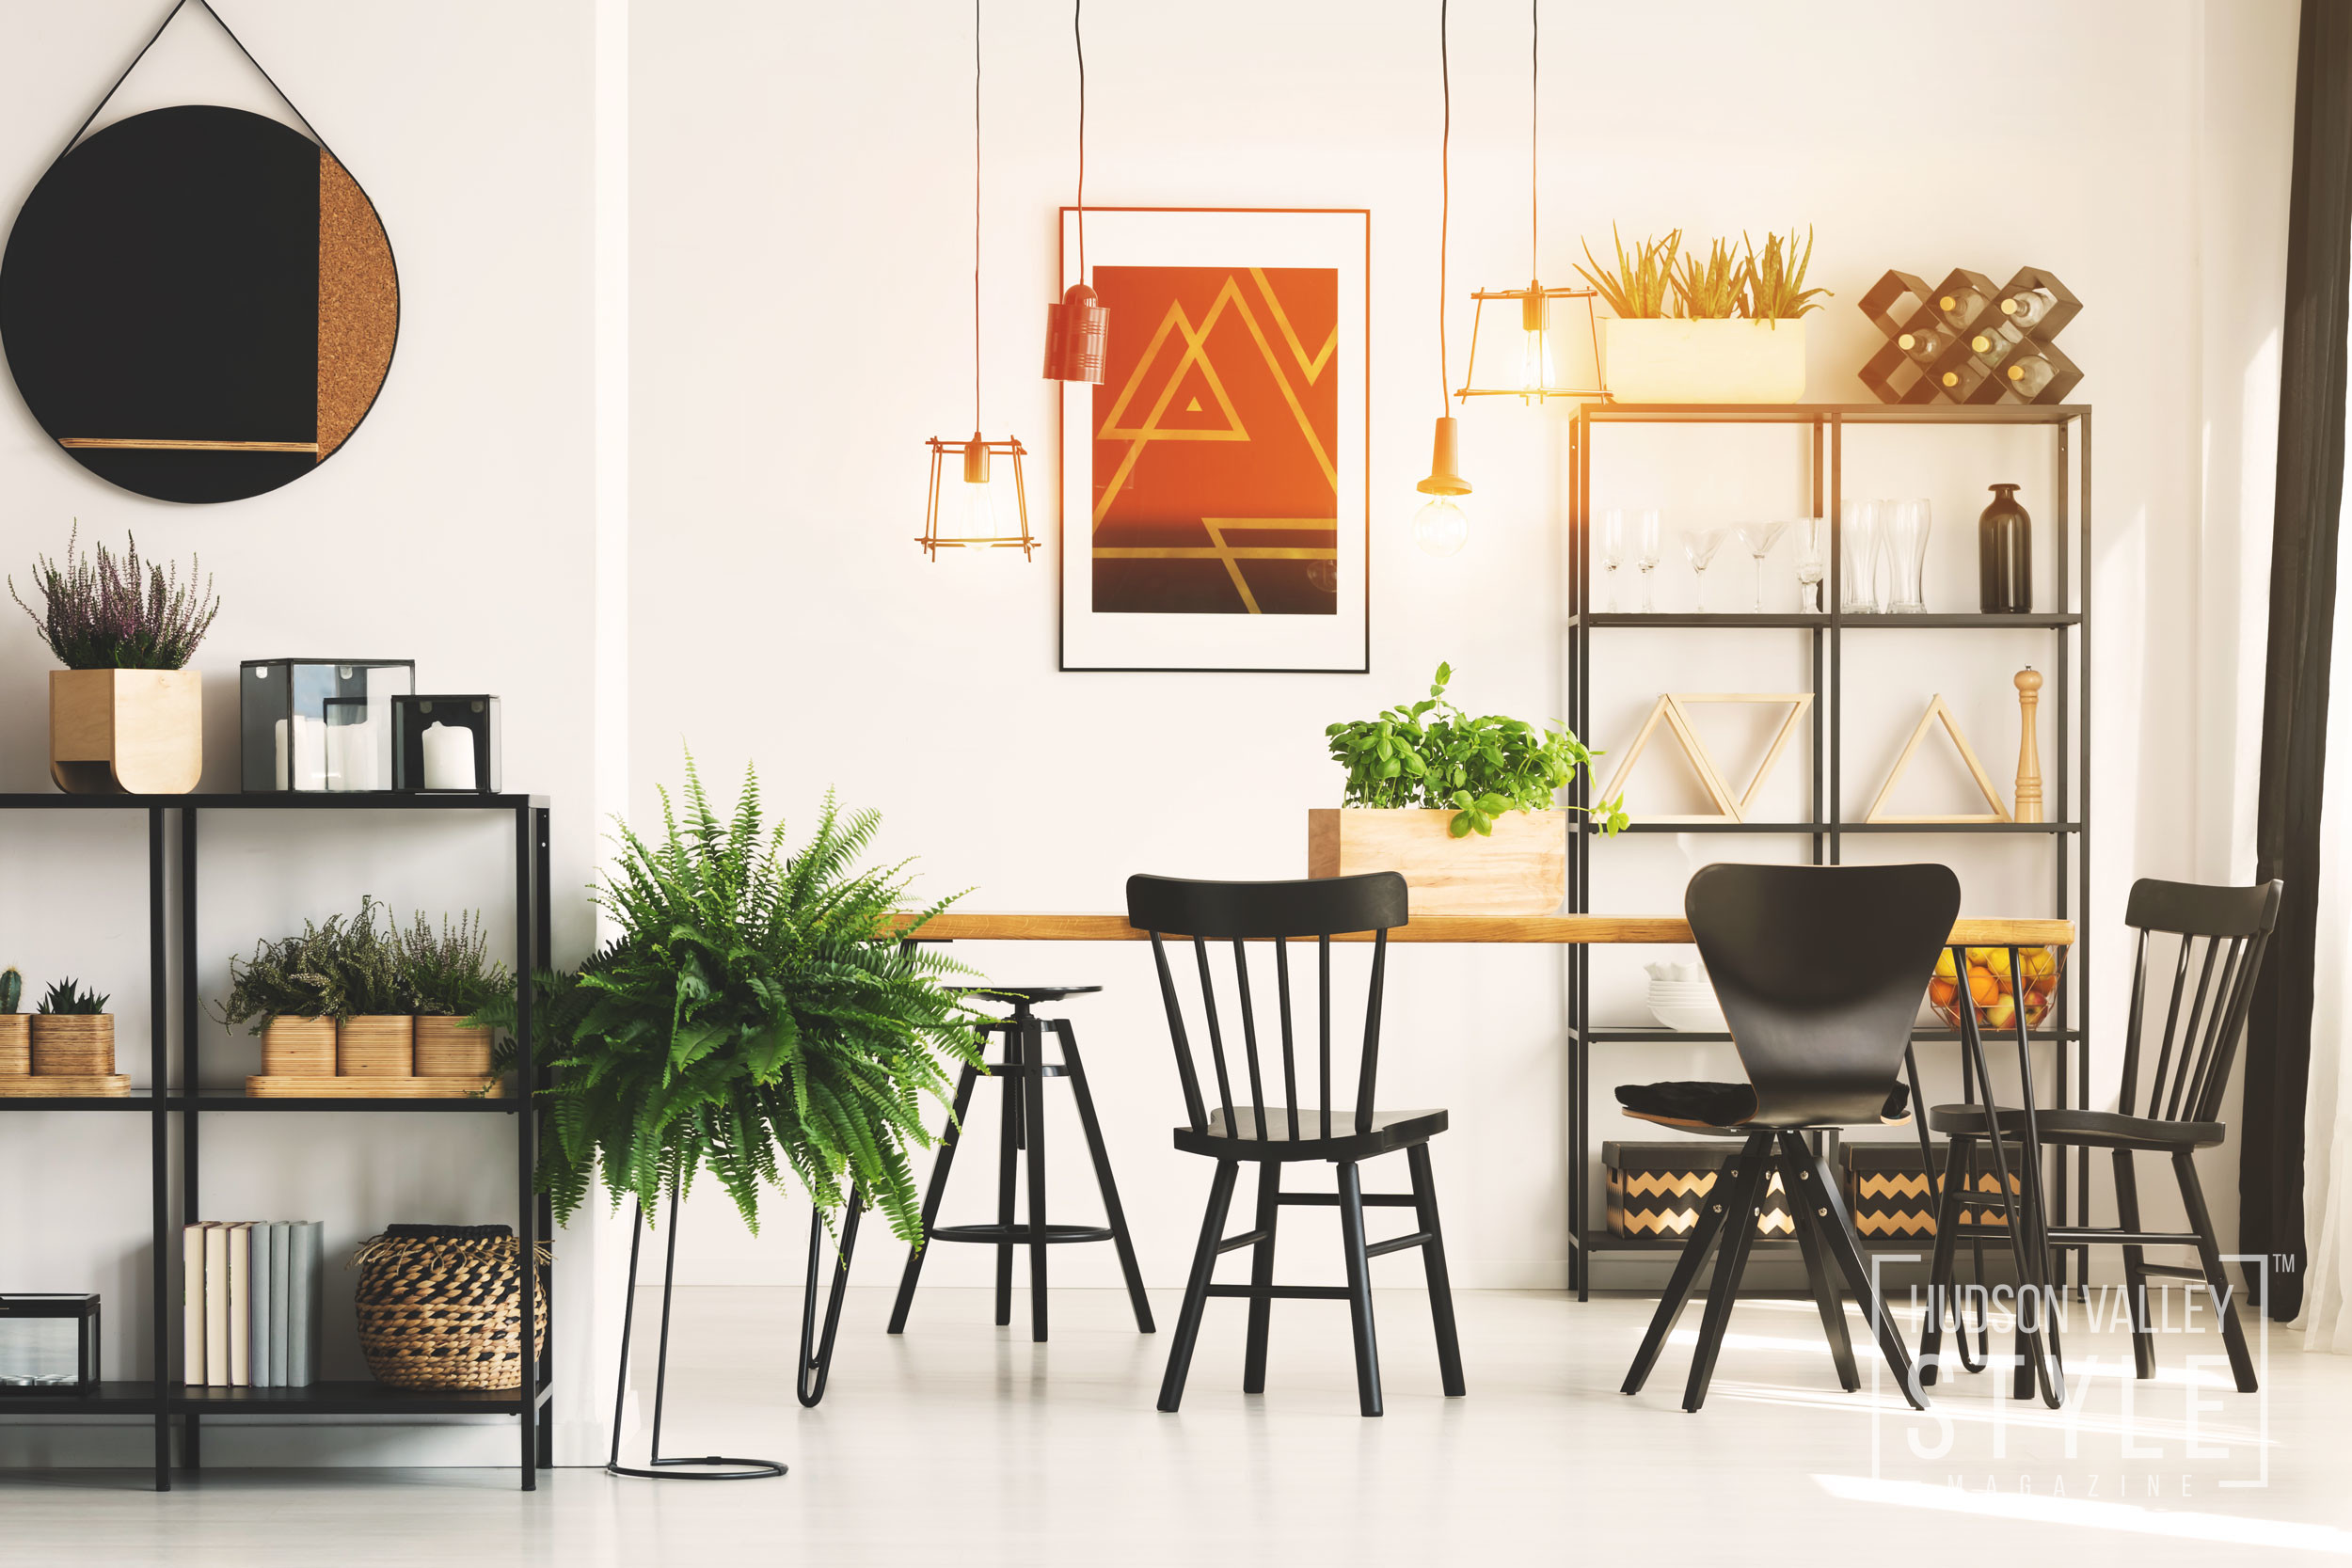 Psychology of Visual Perception: Interior Design Tips to Make a Small Space Seem Big by Maxwell Alexander